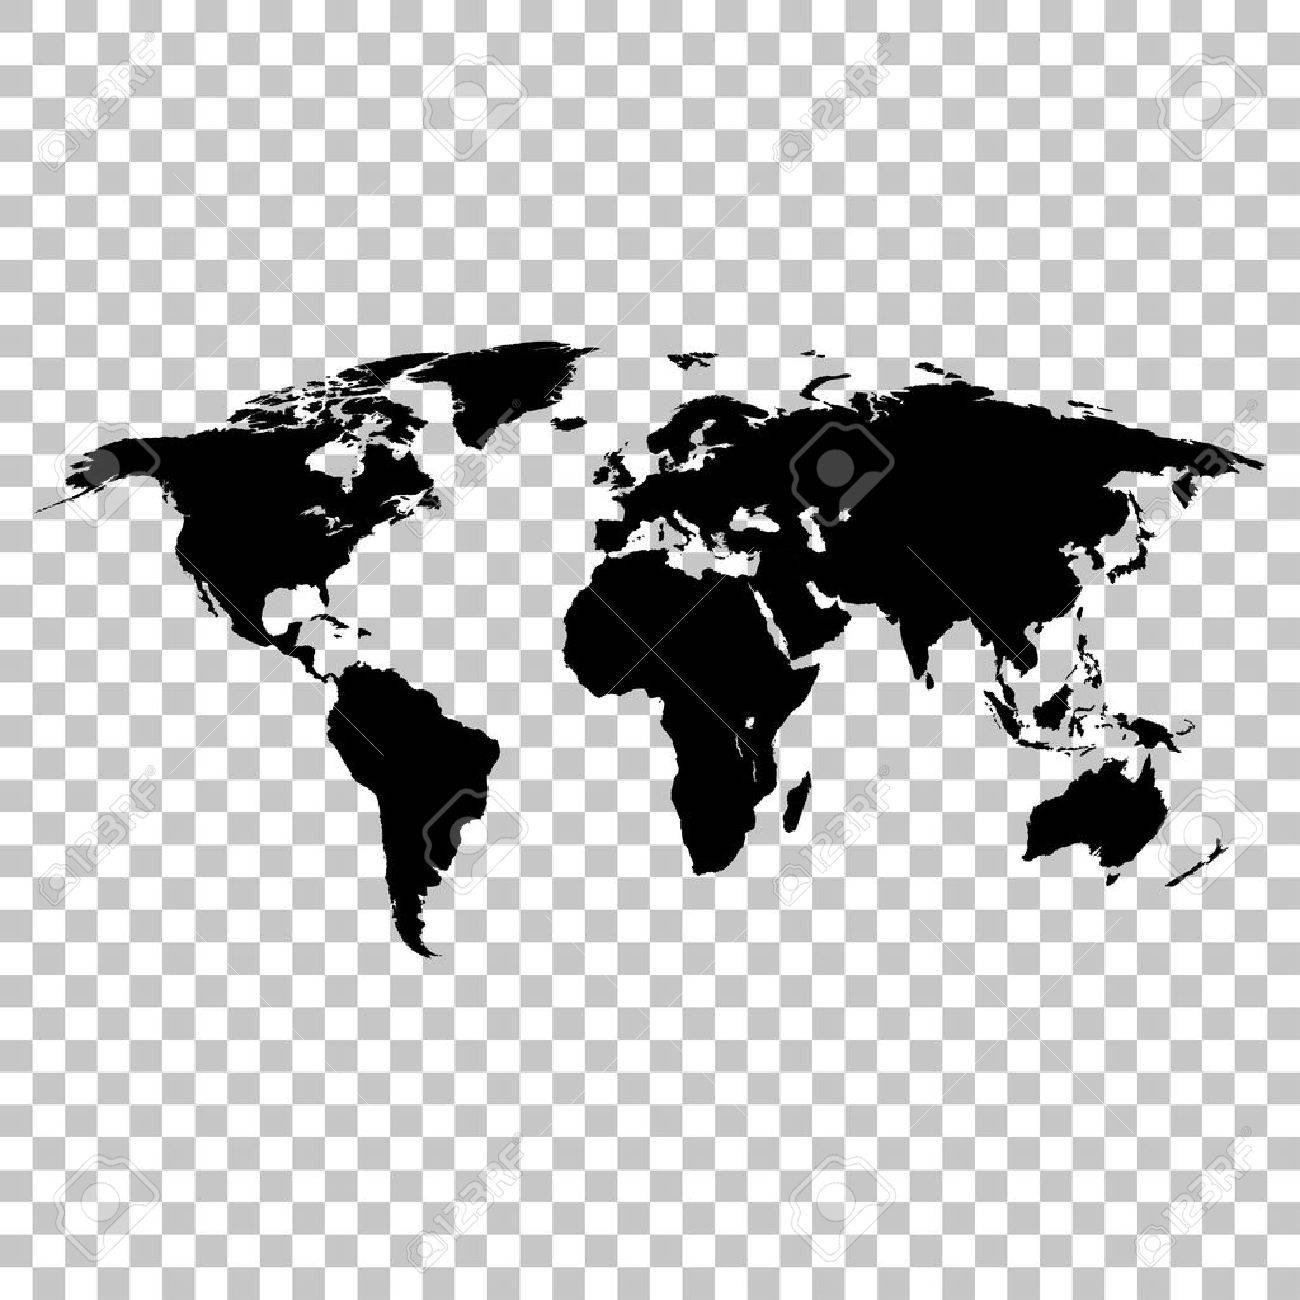 World map black colored silhouette earth stylish royalty free vector world map black colored silhouette earth stylish gumiabroncs Image collections